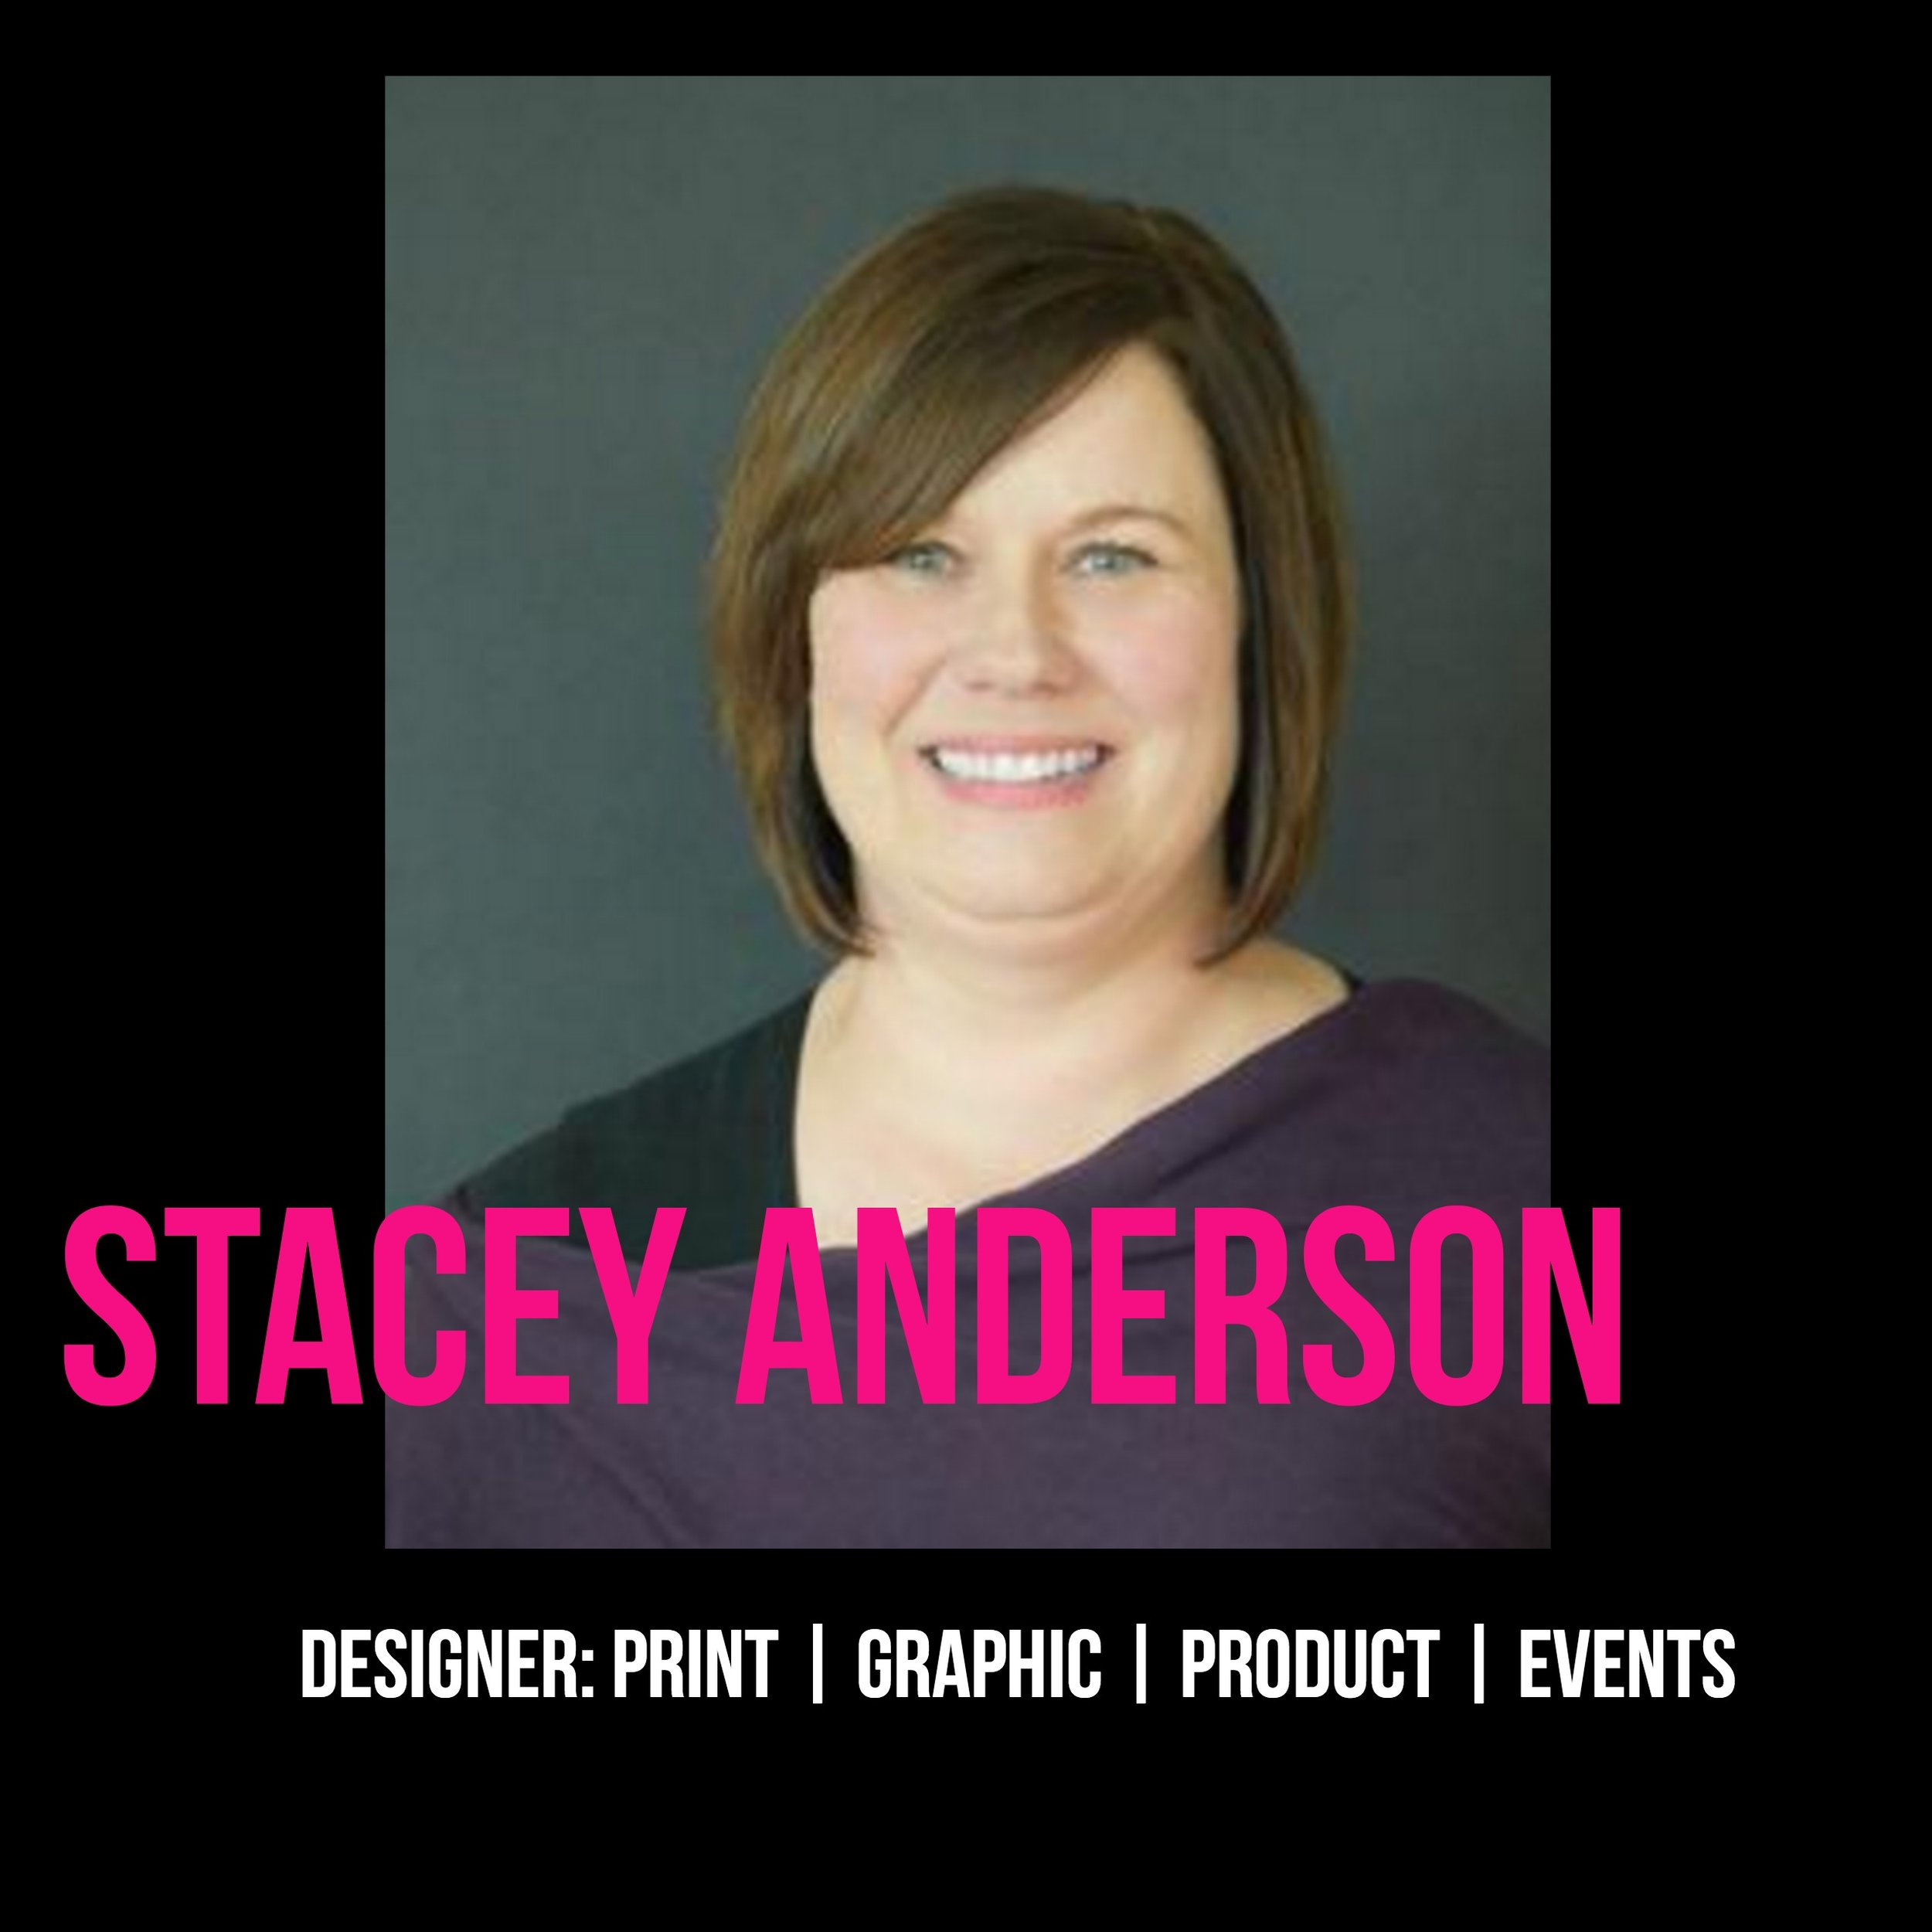 THE JILLS OF ALL TRADES™  Stacey Anderson -Designer: Print, Graphics, Product, Events